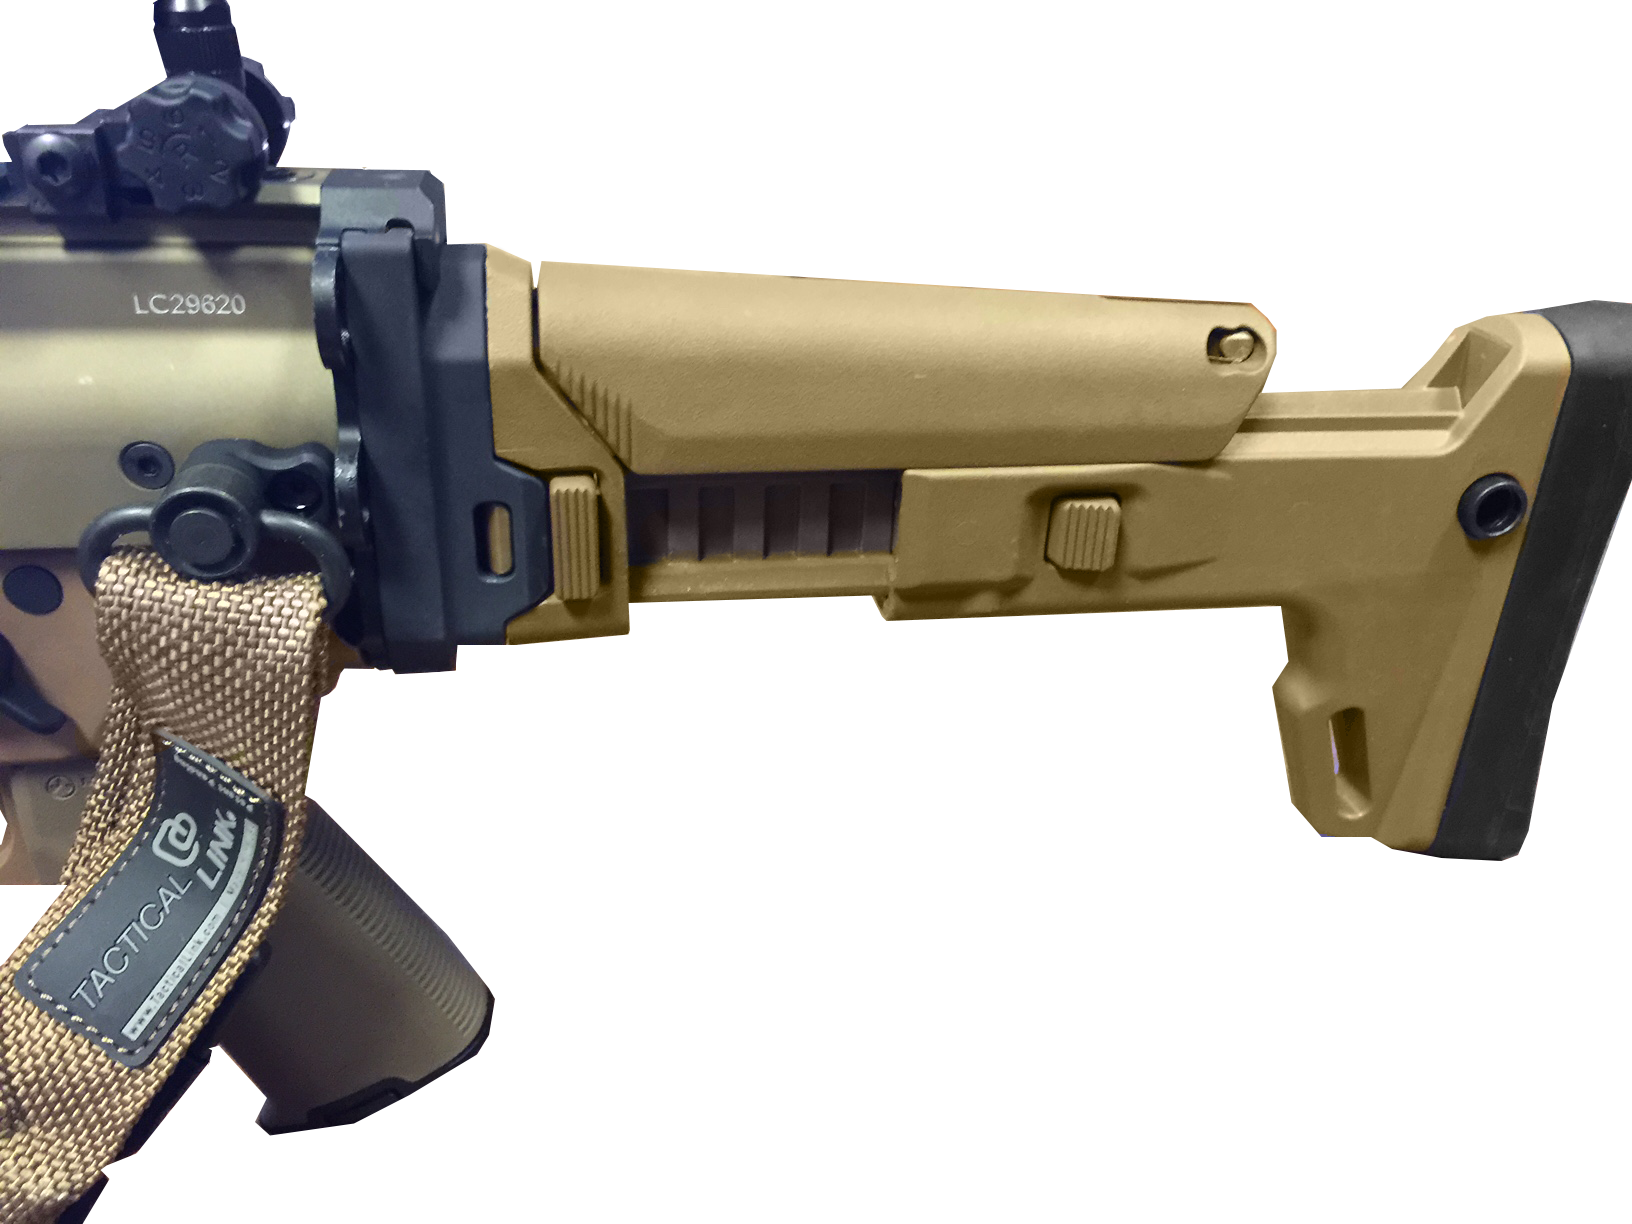 scar-16s-fde-fully-loaded-ksg-stock